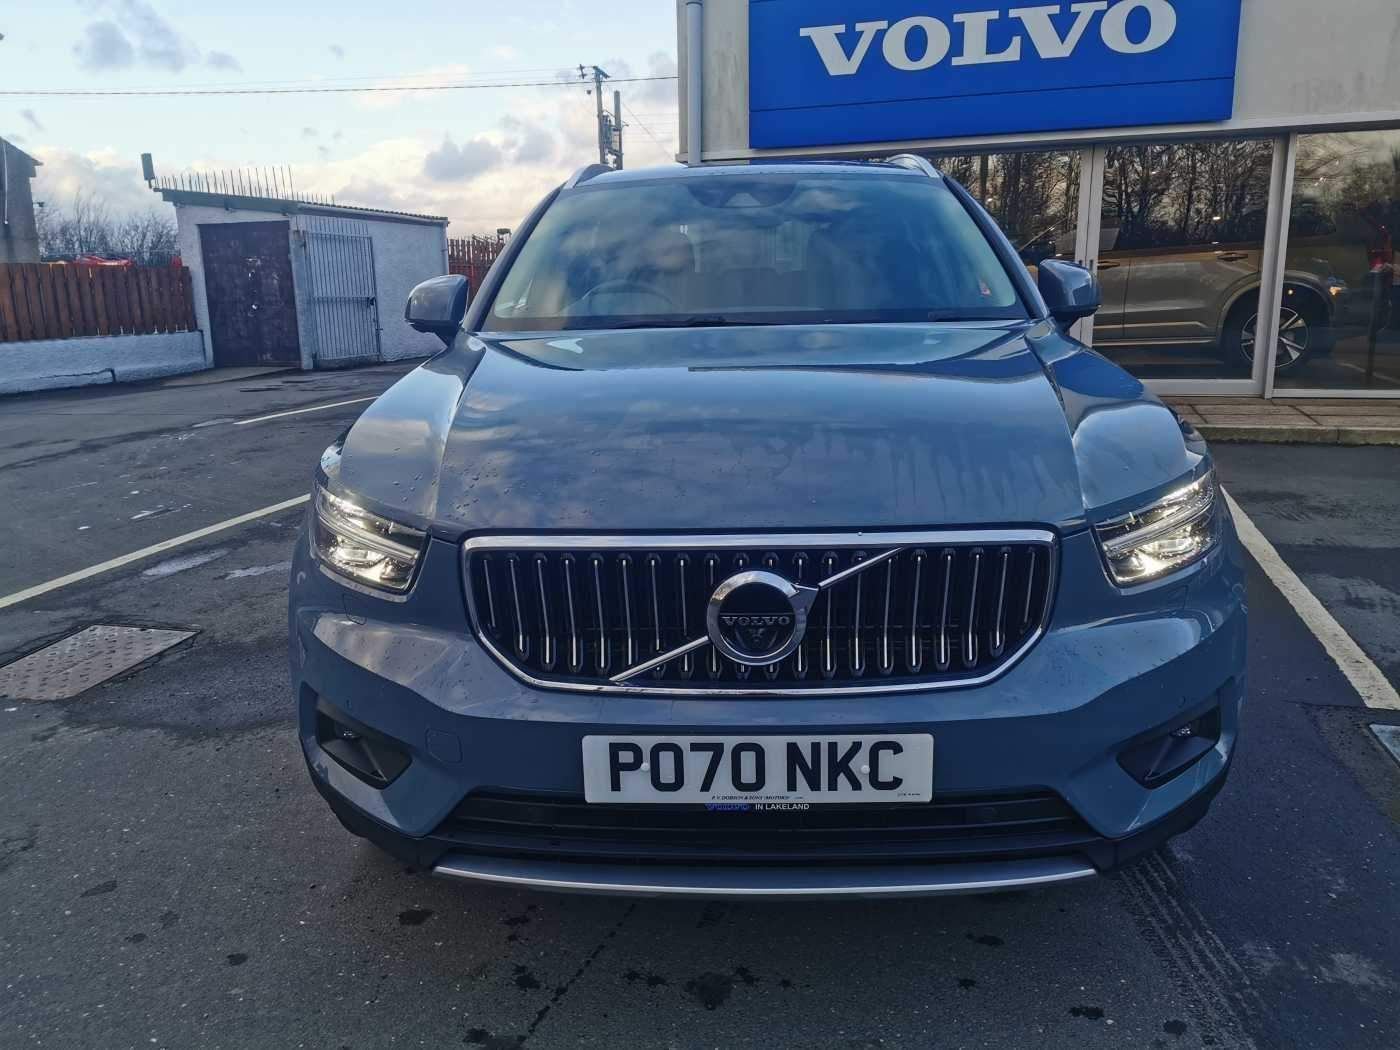 Volvo XC40 1.5h T5 Twin Engine 10.7kWh Inscription Pro Auto (s/s) 5dr